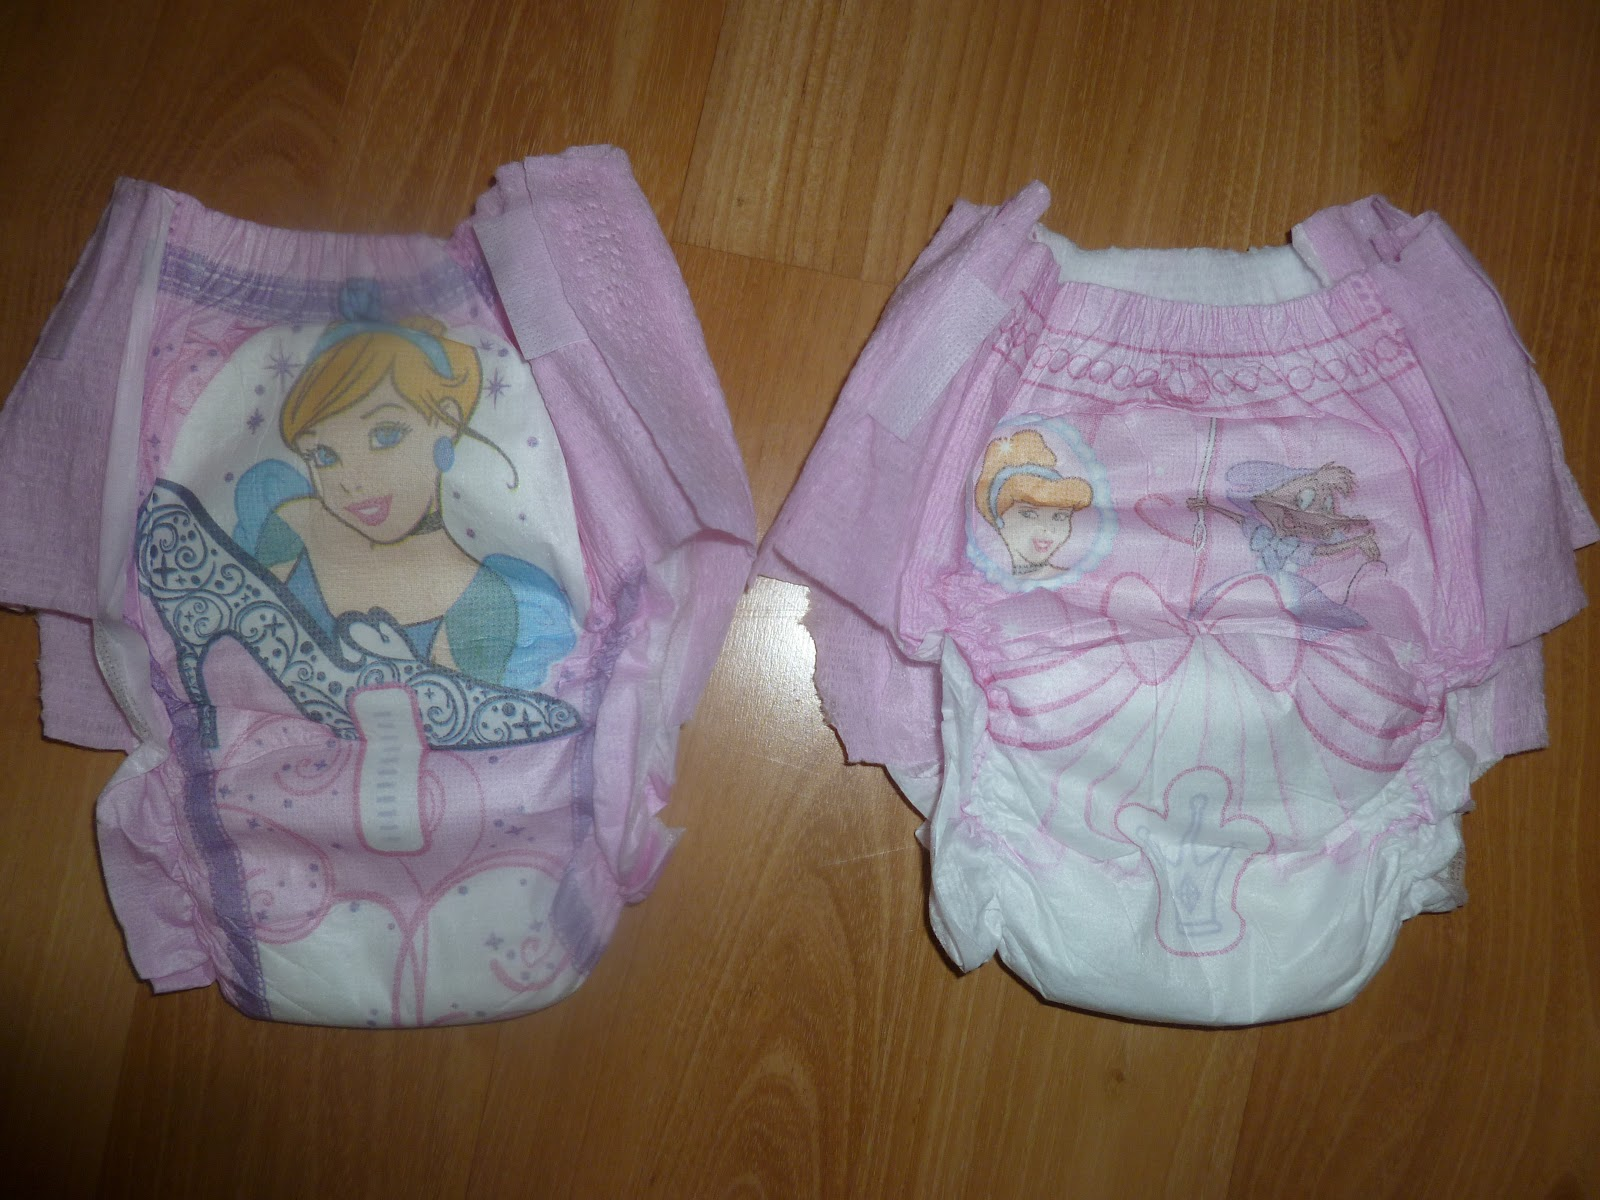 PERFECT POTTY TRAINING TOOL - HUGGIES PULL-UPS TRAINING PANTS ...